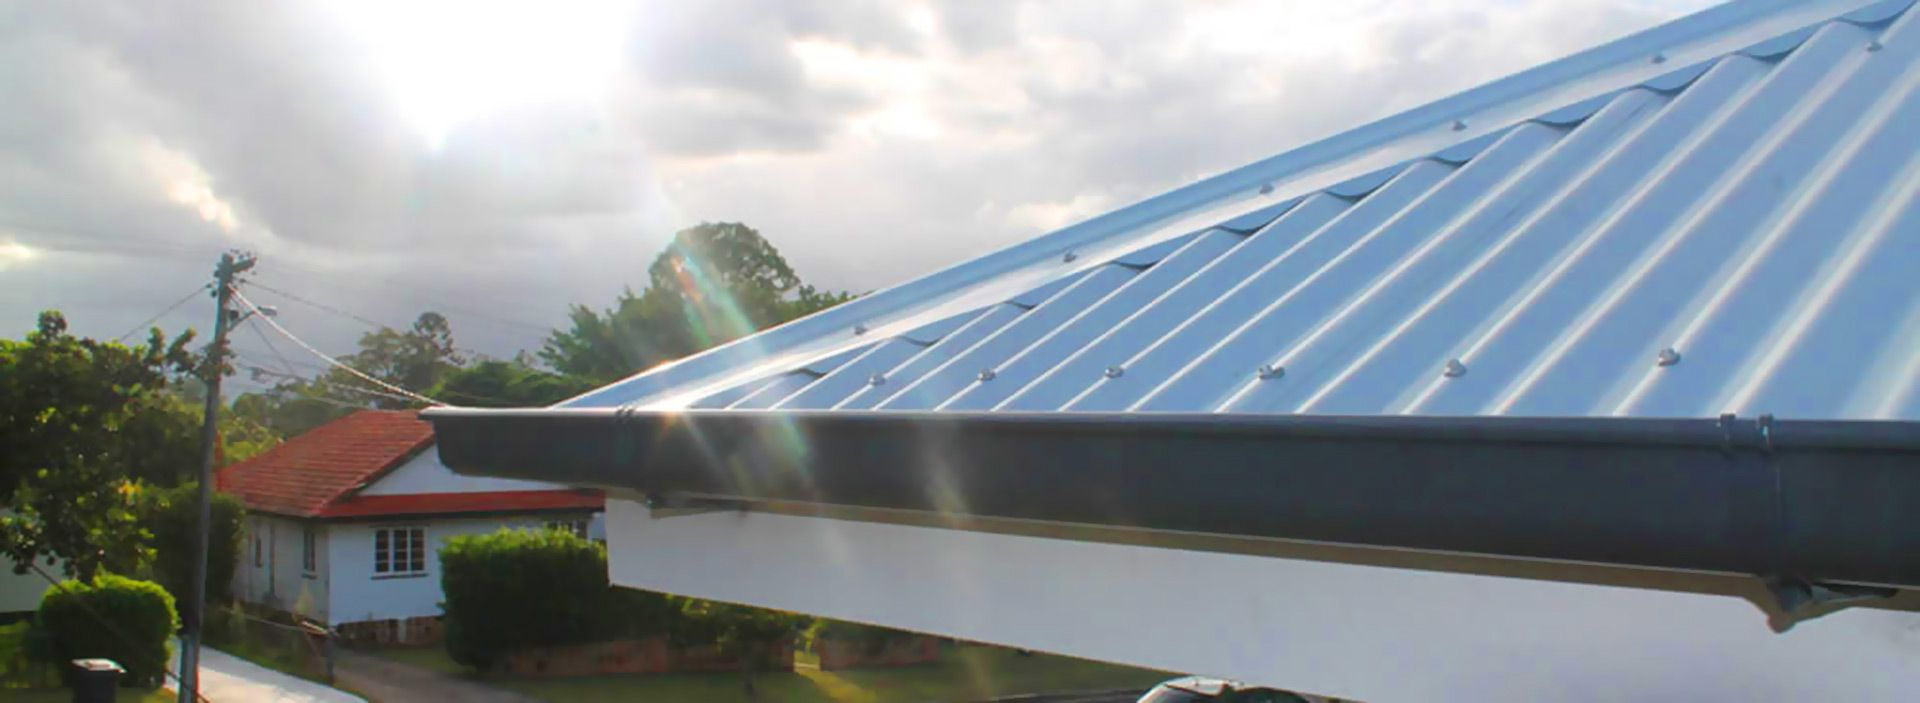 Asbestos Is A Naturally Occurring Mineral Having Dangerous Substance In Brisbane Zen Roofing Provides A Higher Quality Material Commercial Roofing Roofing Materials Metal Roof